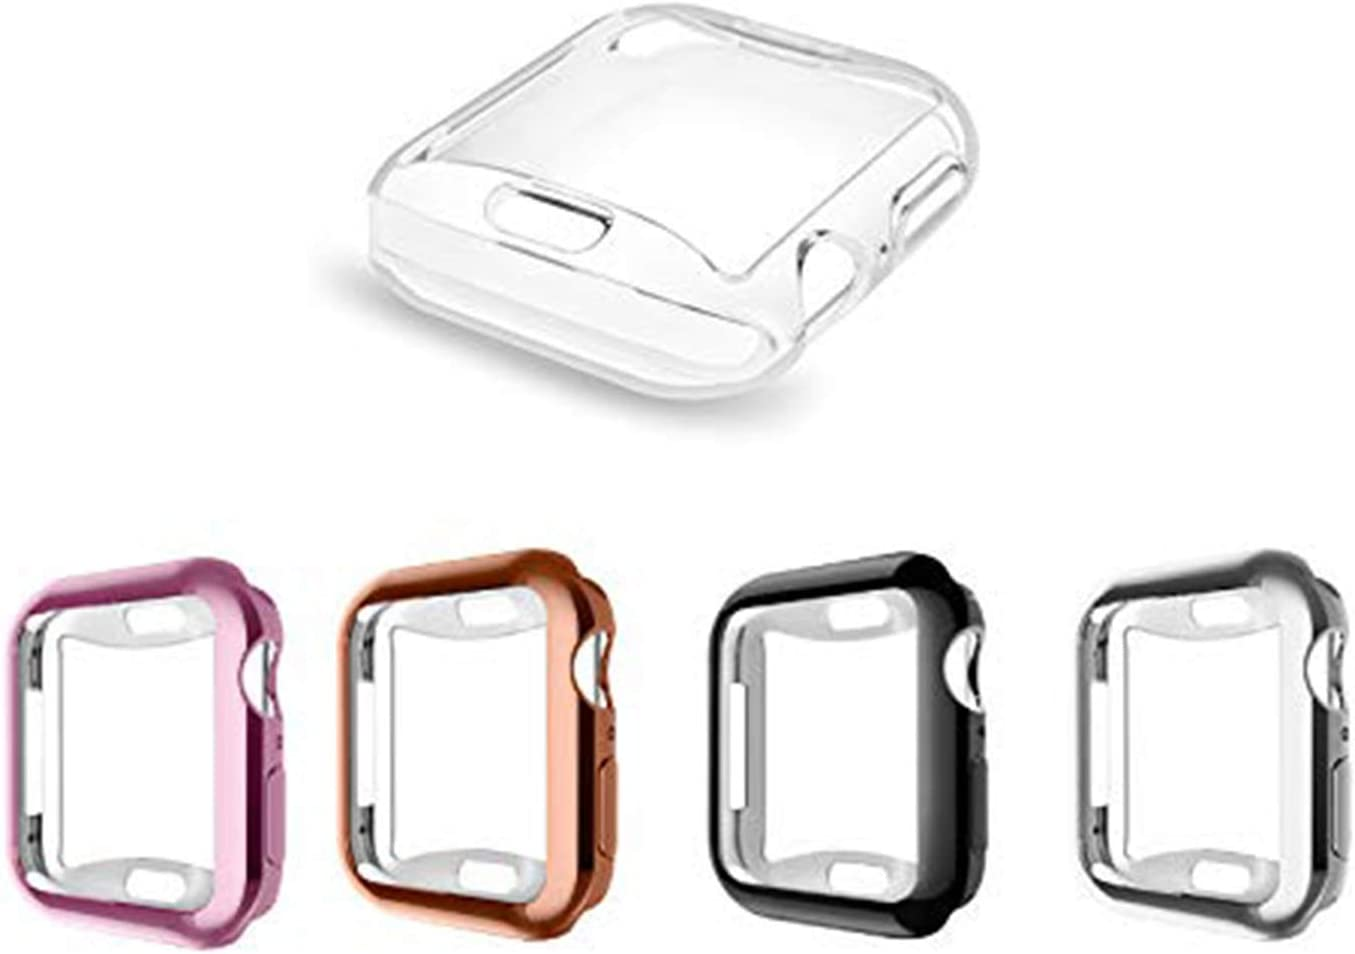 [5 Pack] ALADRS Screen Protector Case for Apple Watch 44mm, Full Protective HD Ultra-Thin Cover Compatible with iWatch Series 4 Series 5 Series 6 SE Bumper Case